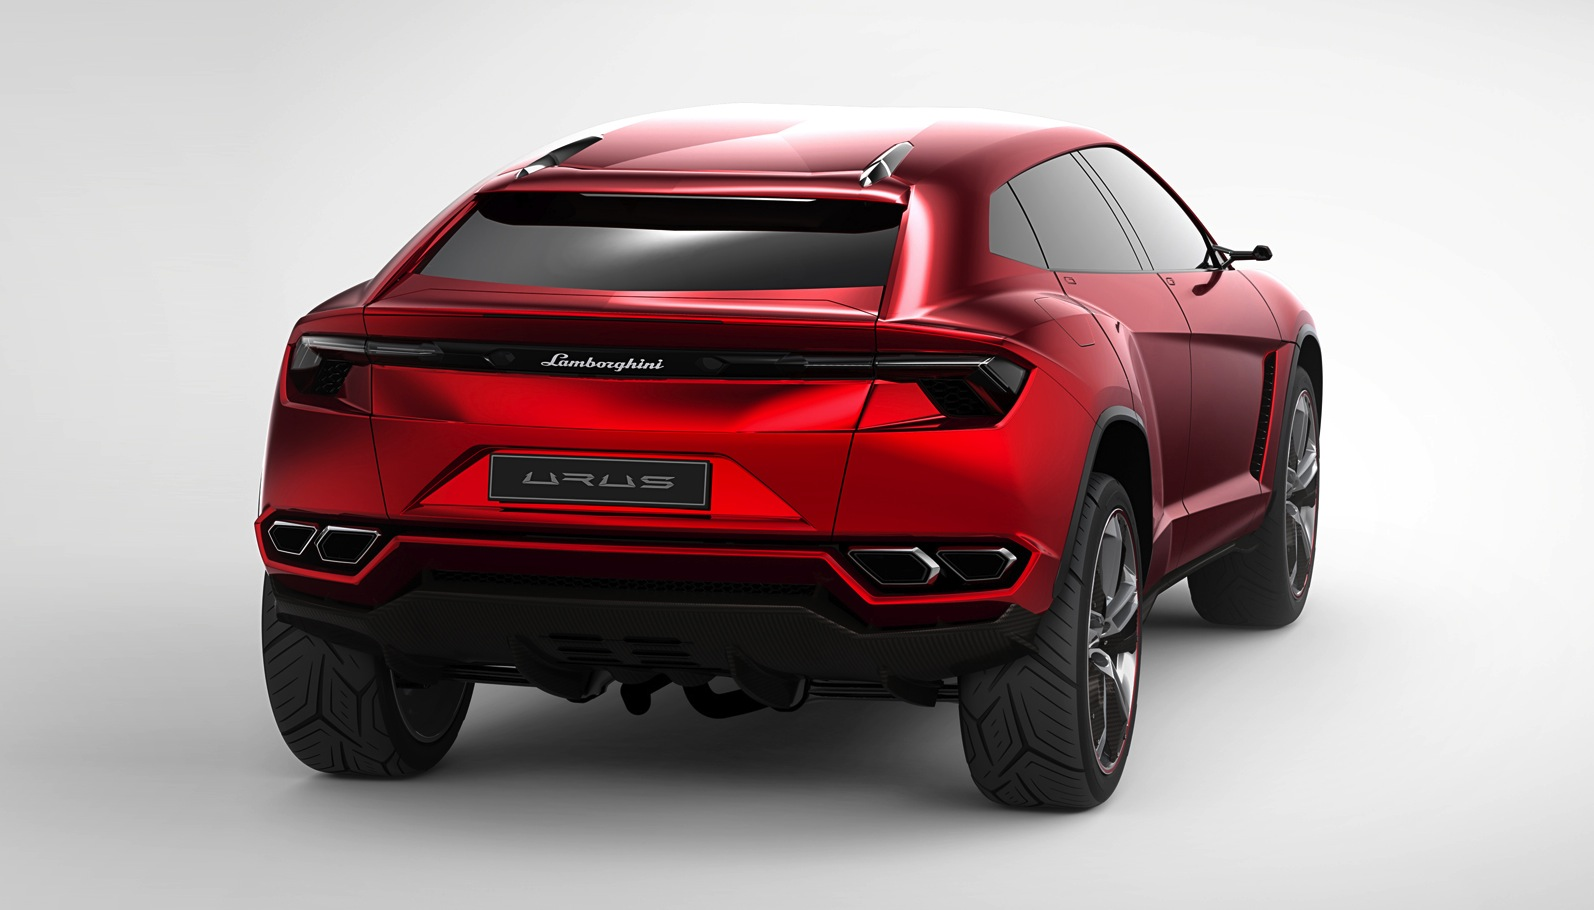 Lamborghini Urus: super SUV concept revealed - photos | CarAdvice